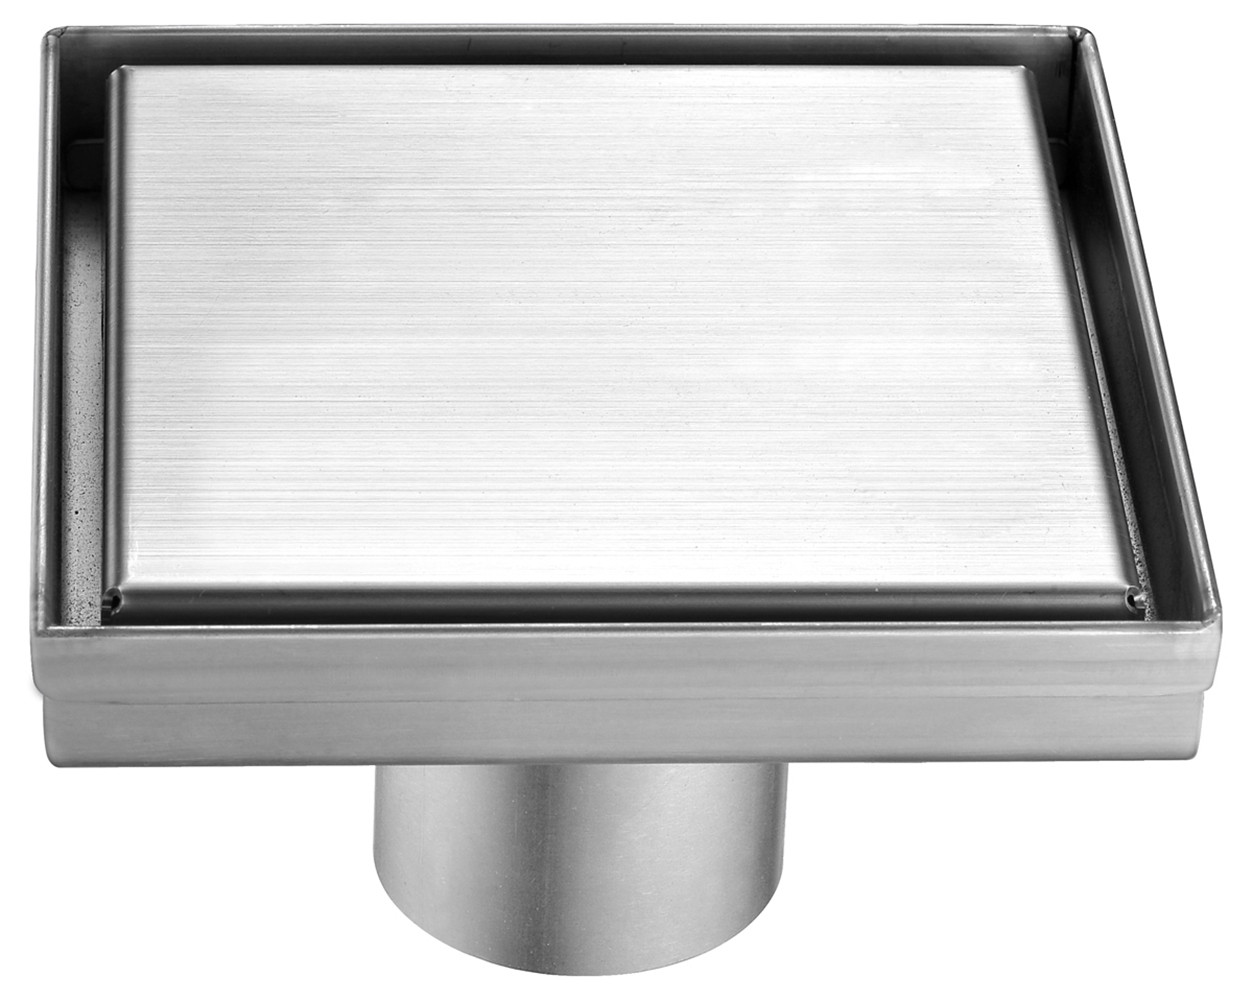 "ALFI brand ABSD55B-BSS 5""x5"" Square Stainless Shower Drain w/ Solid Cover"